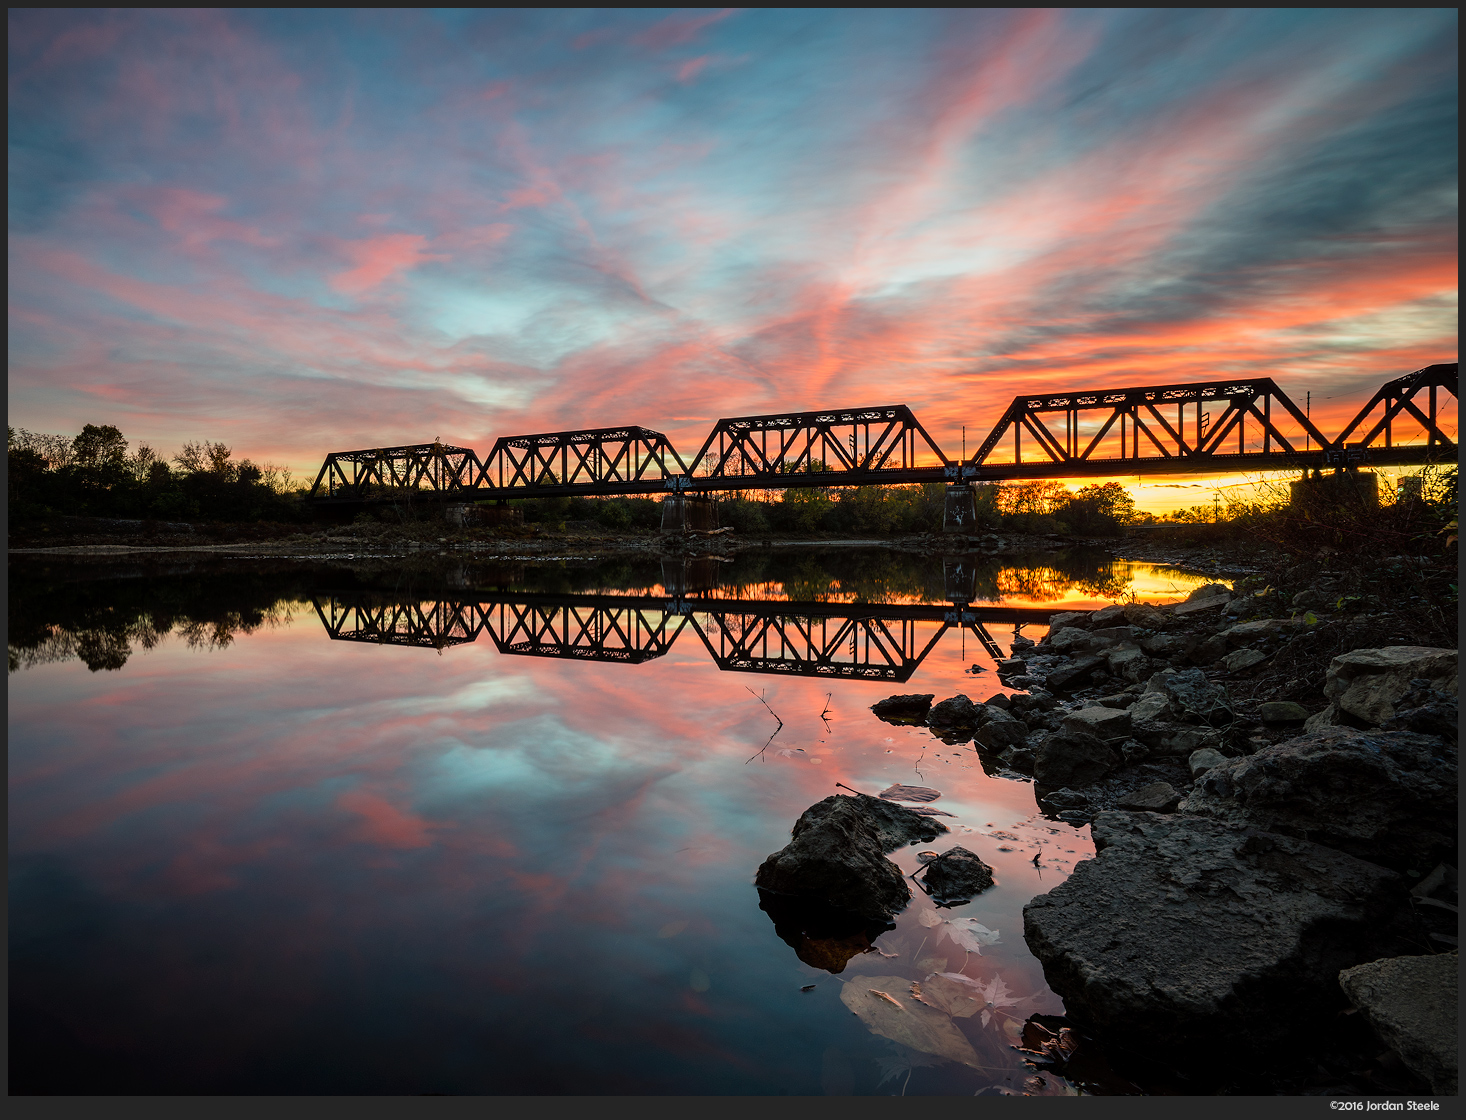 Railroad Sunset - Sony A7 II with Zeiss FE 16-35mm f/4 @